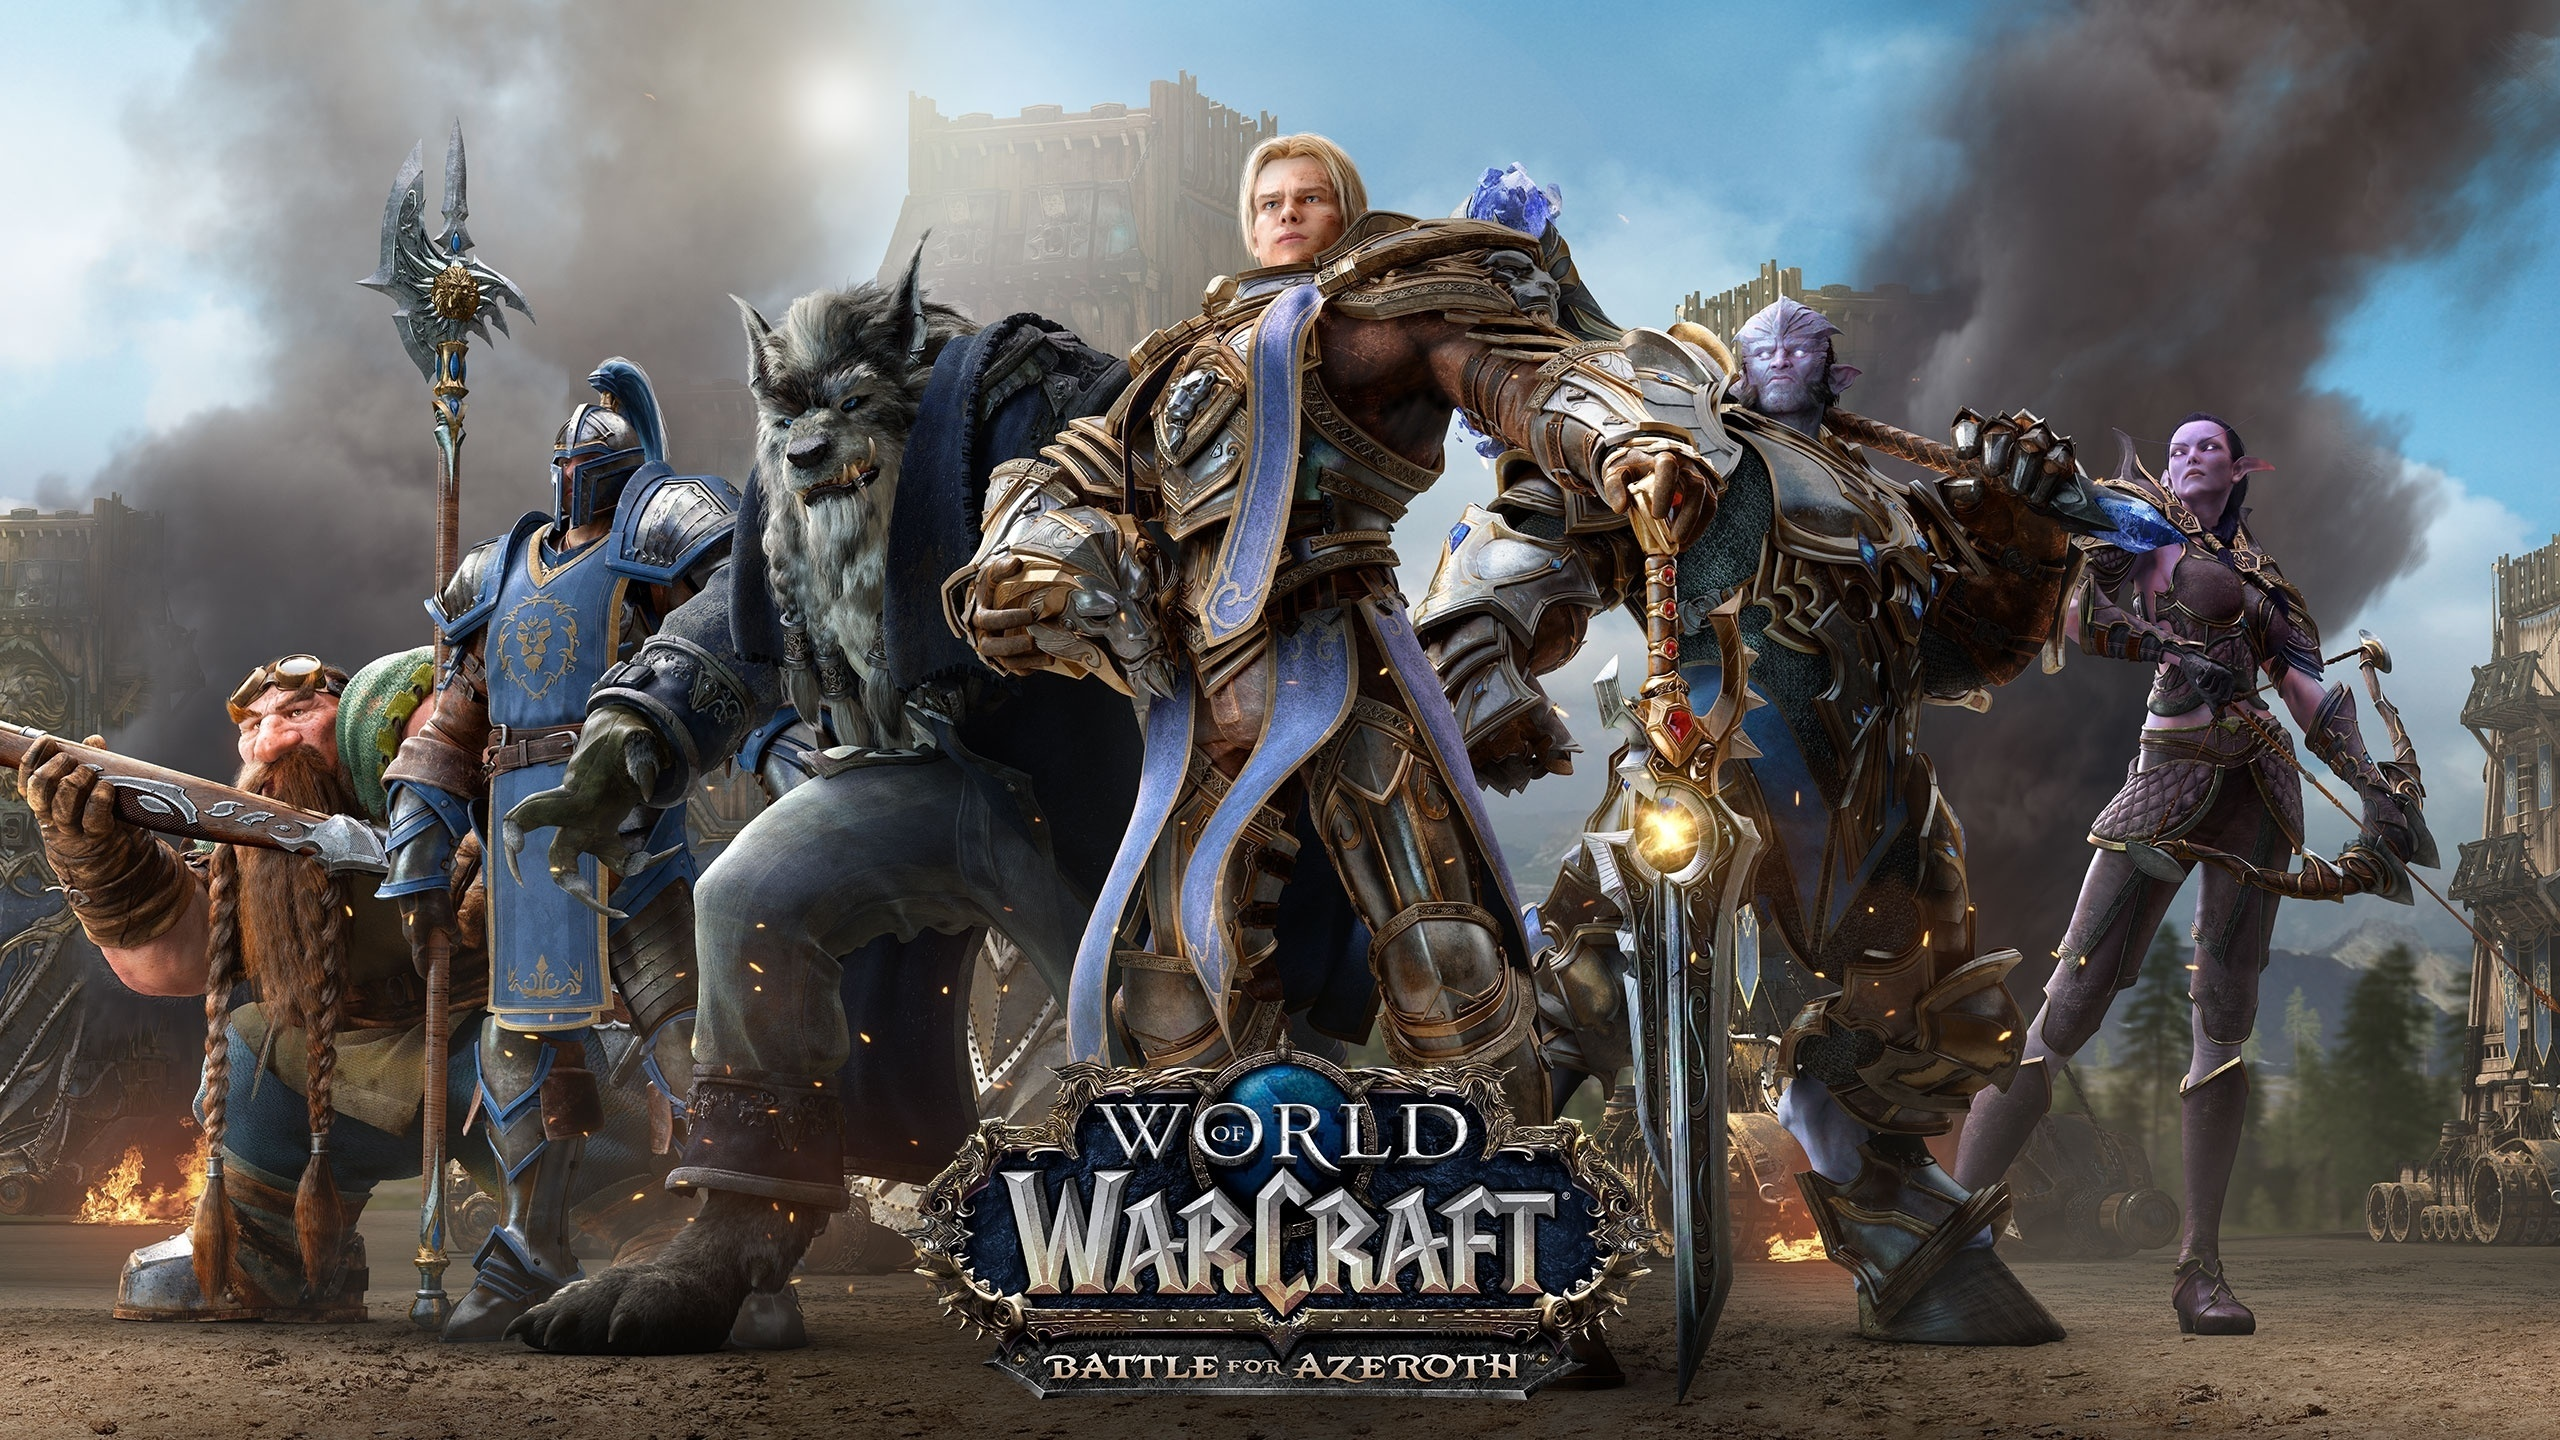 World of warcraft battle chest keygen crack patch Free Download